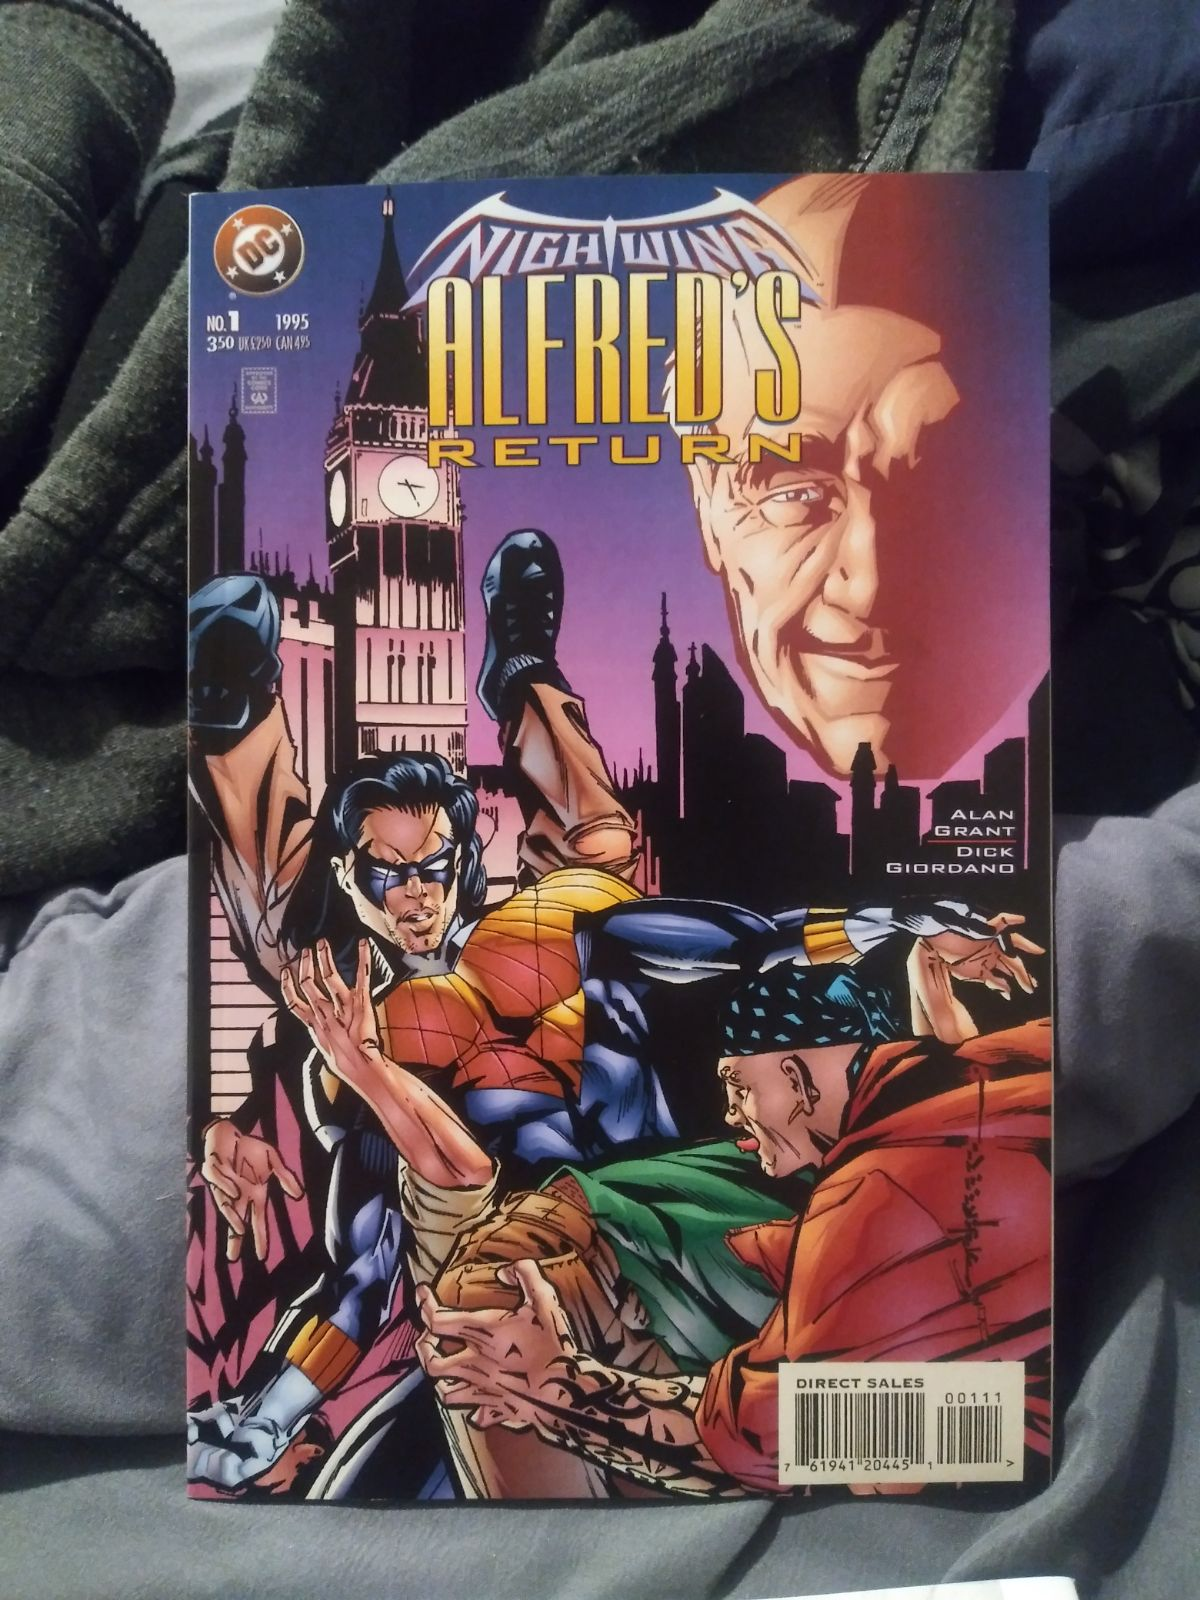 "NIGHTWING ""ALFREDS RETURN"" DC COMICS"